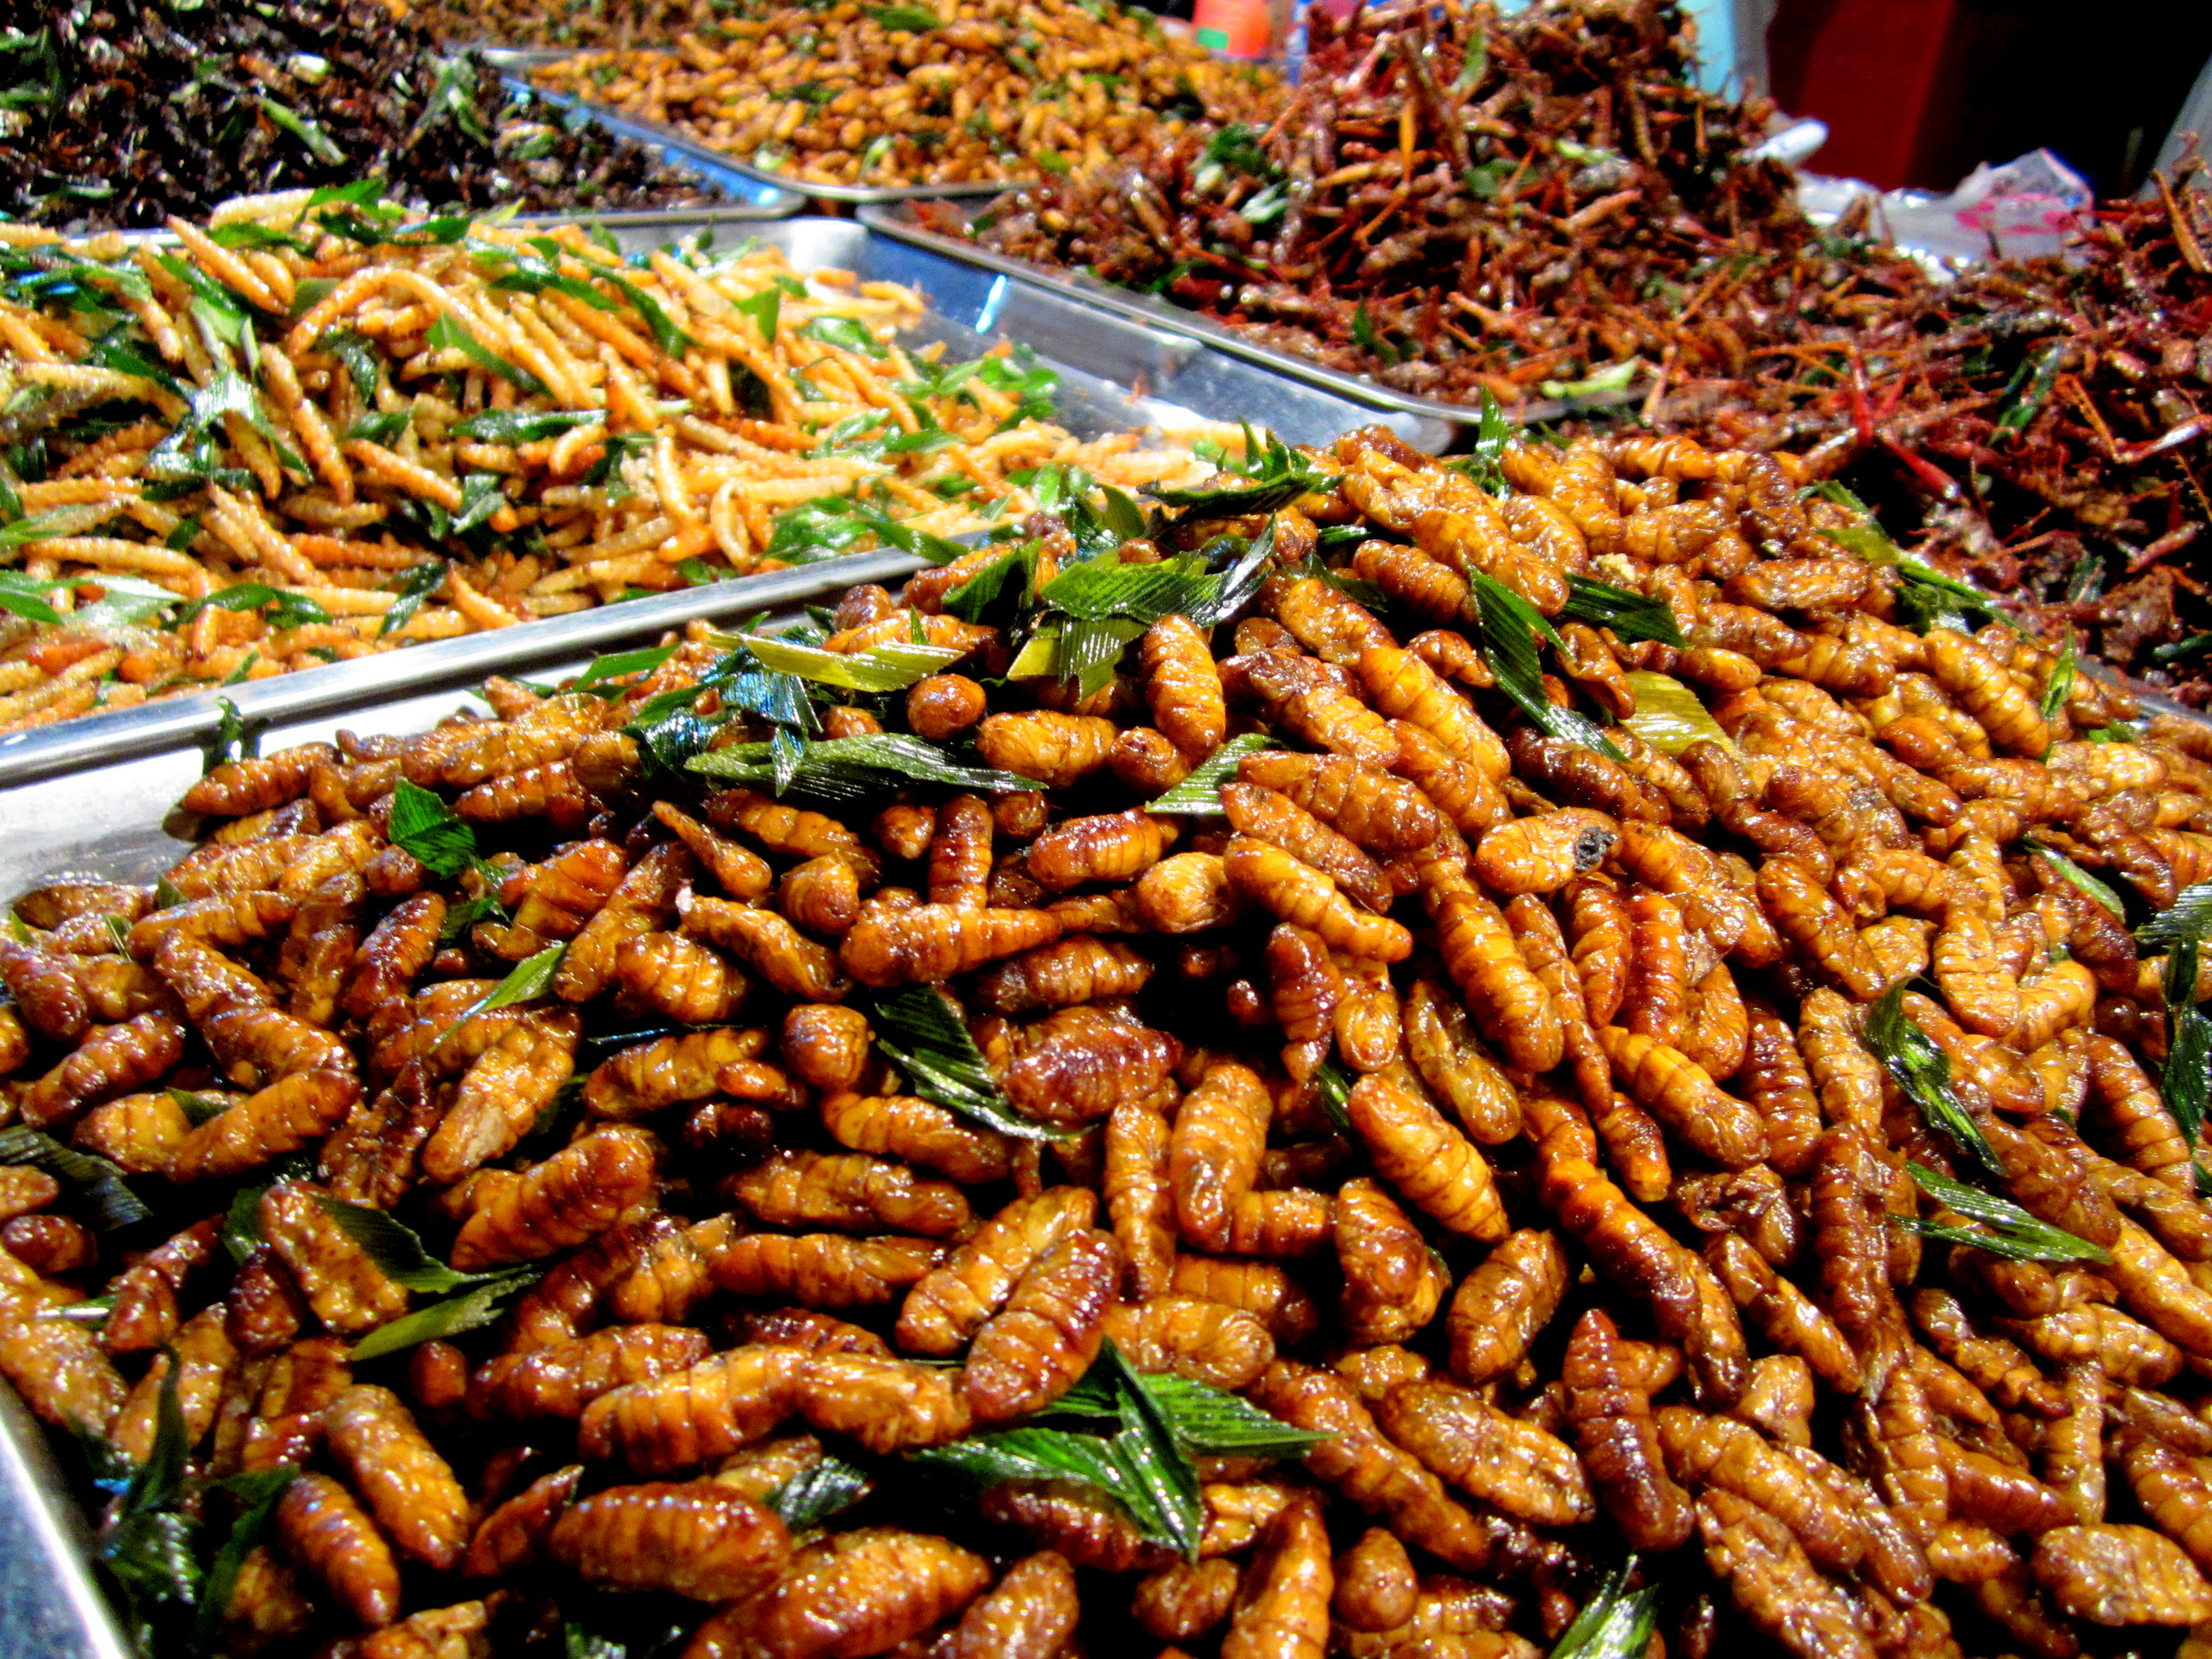 Night market snacks in Khon Kaen, Thailand